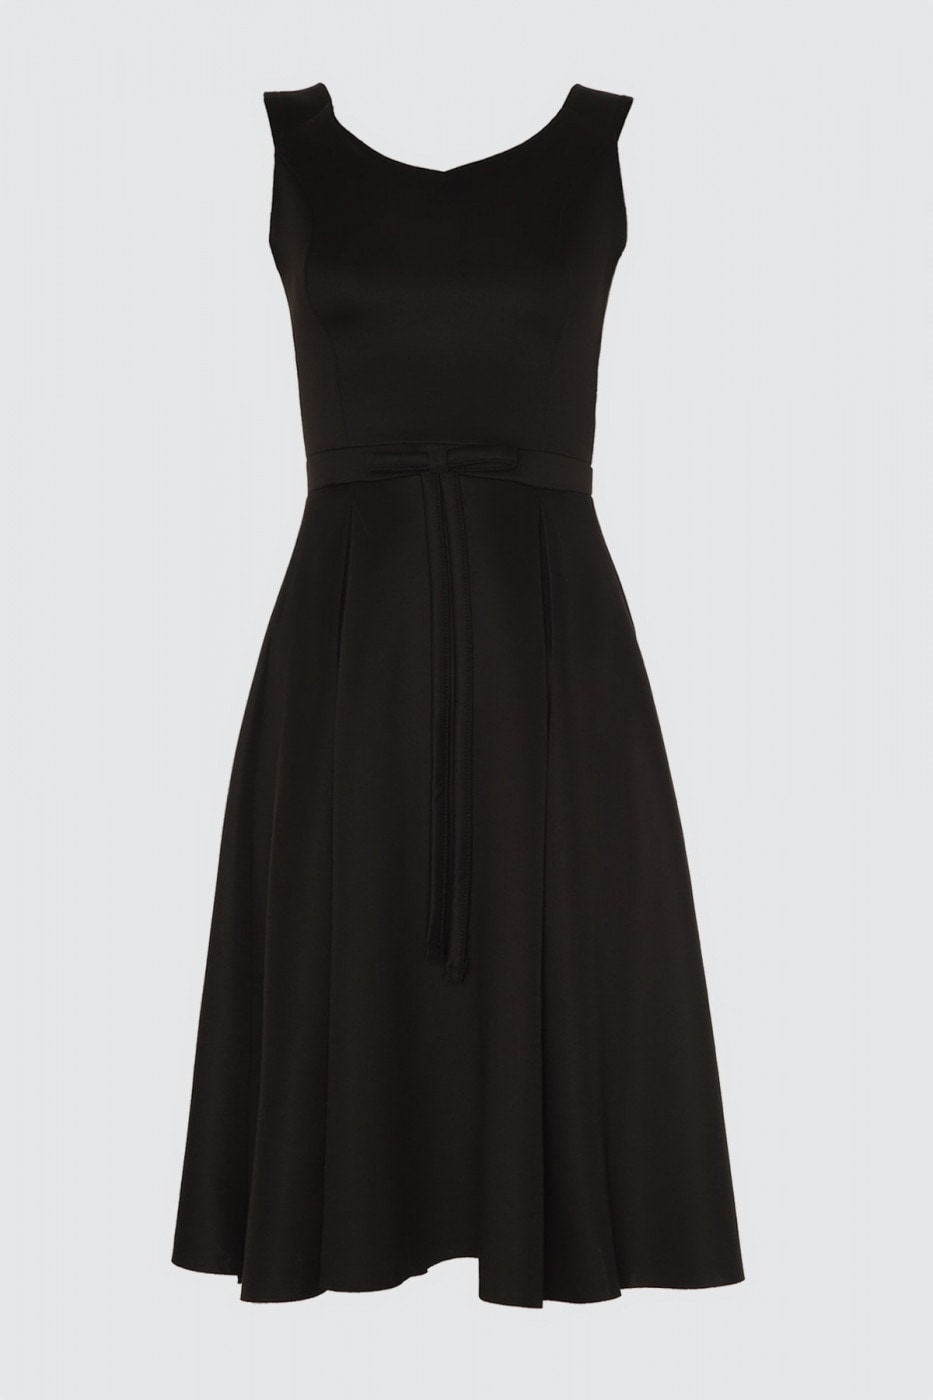 Trendyol Black Waist Ribbon Detail Dress